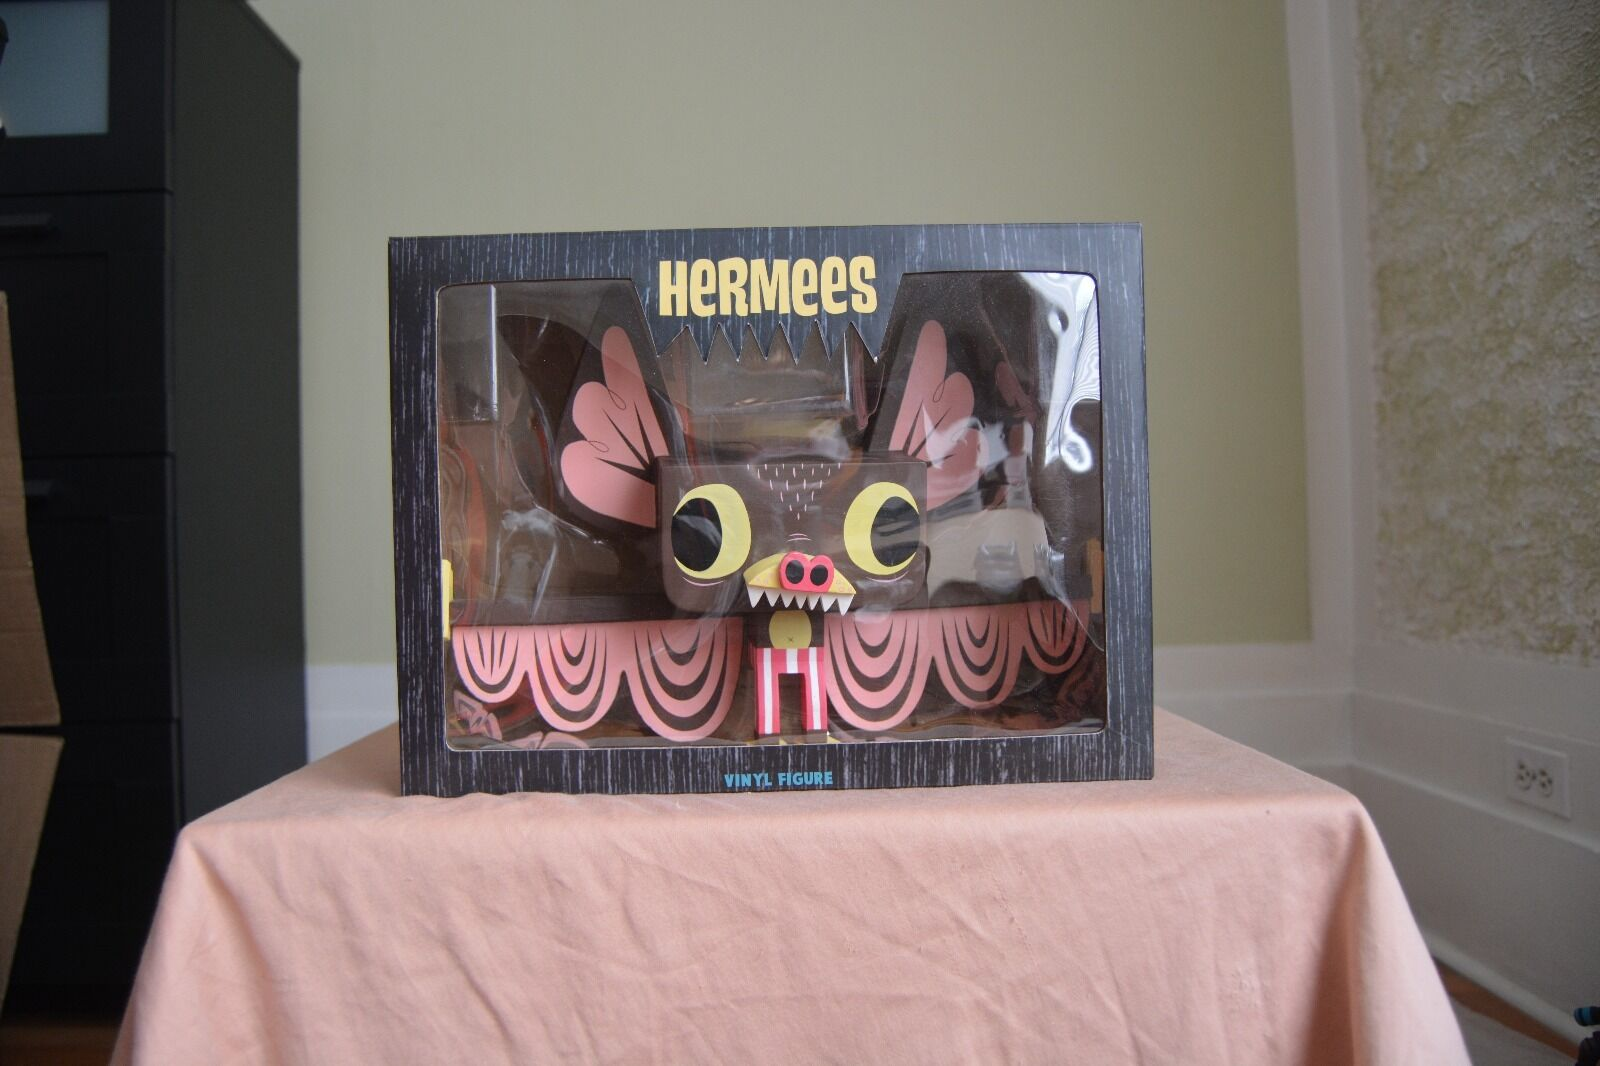 Hermees Gary Ham Vinyl Bat Figure pink signed box cute kawaii funny quirky